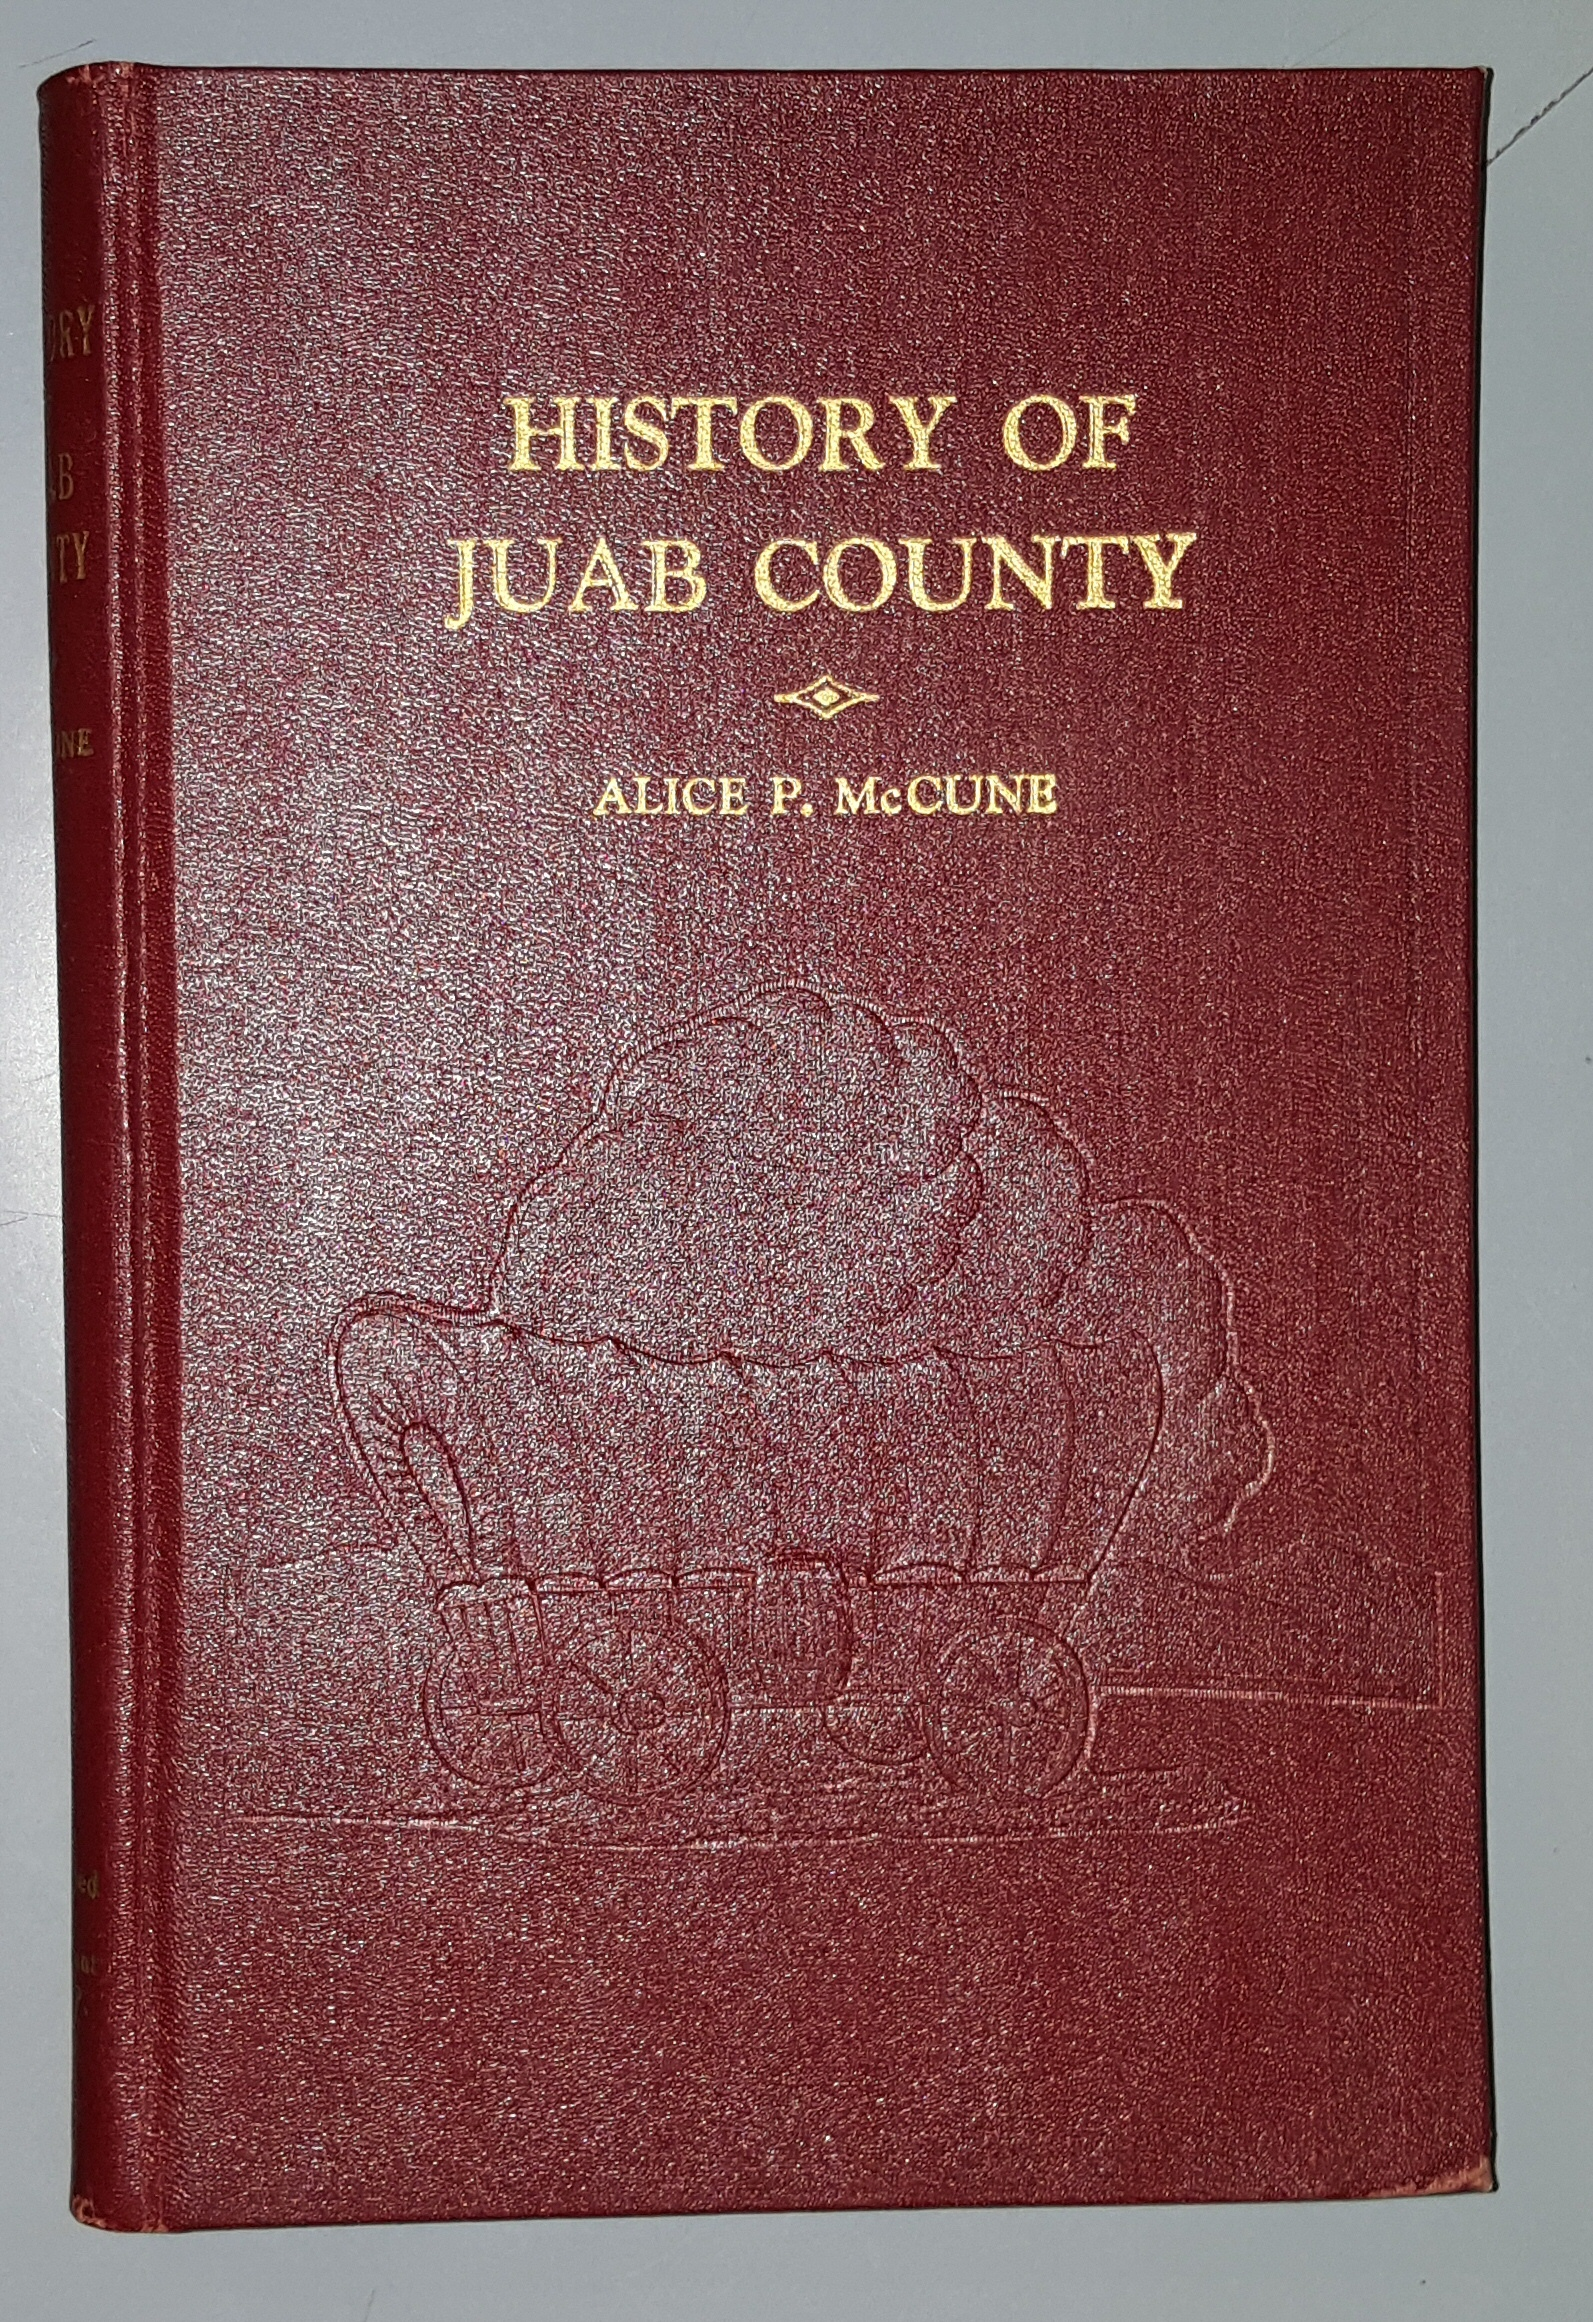 History of Juab County - A History Prepared for the Centennial of the Coming of the Pioneers to Utah 1847-1947 A History Prepared for the Centennial of the Coming of the Pioneers to Utah 1847-1947, McCune, Alice Paxman